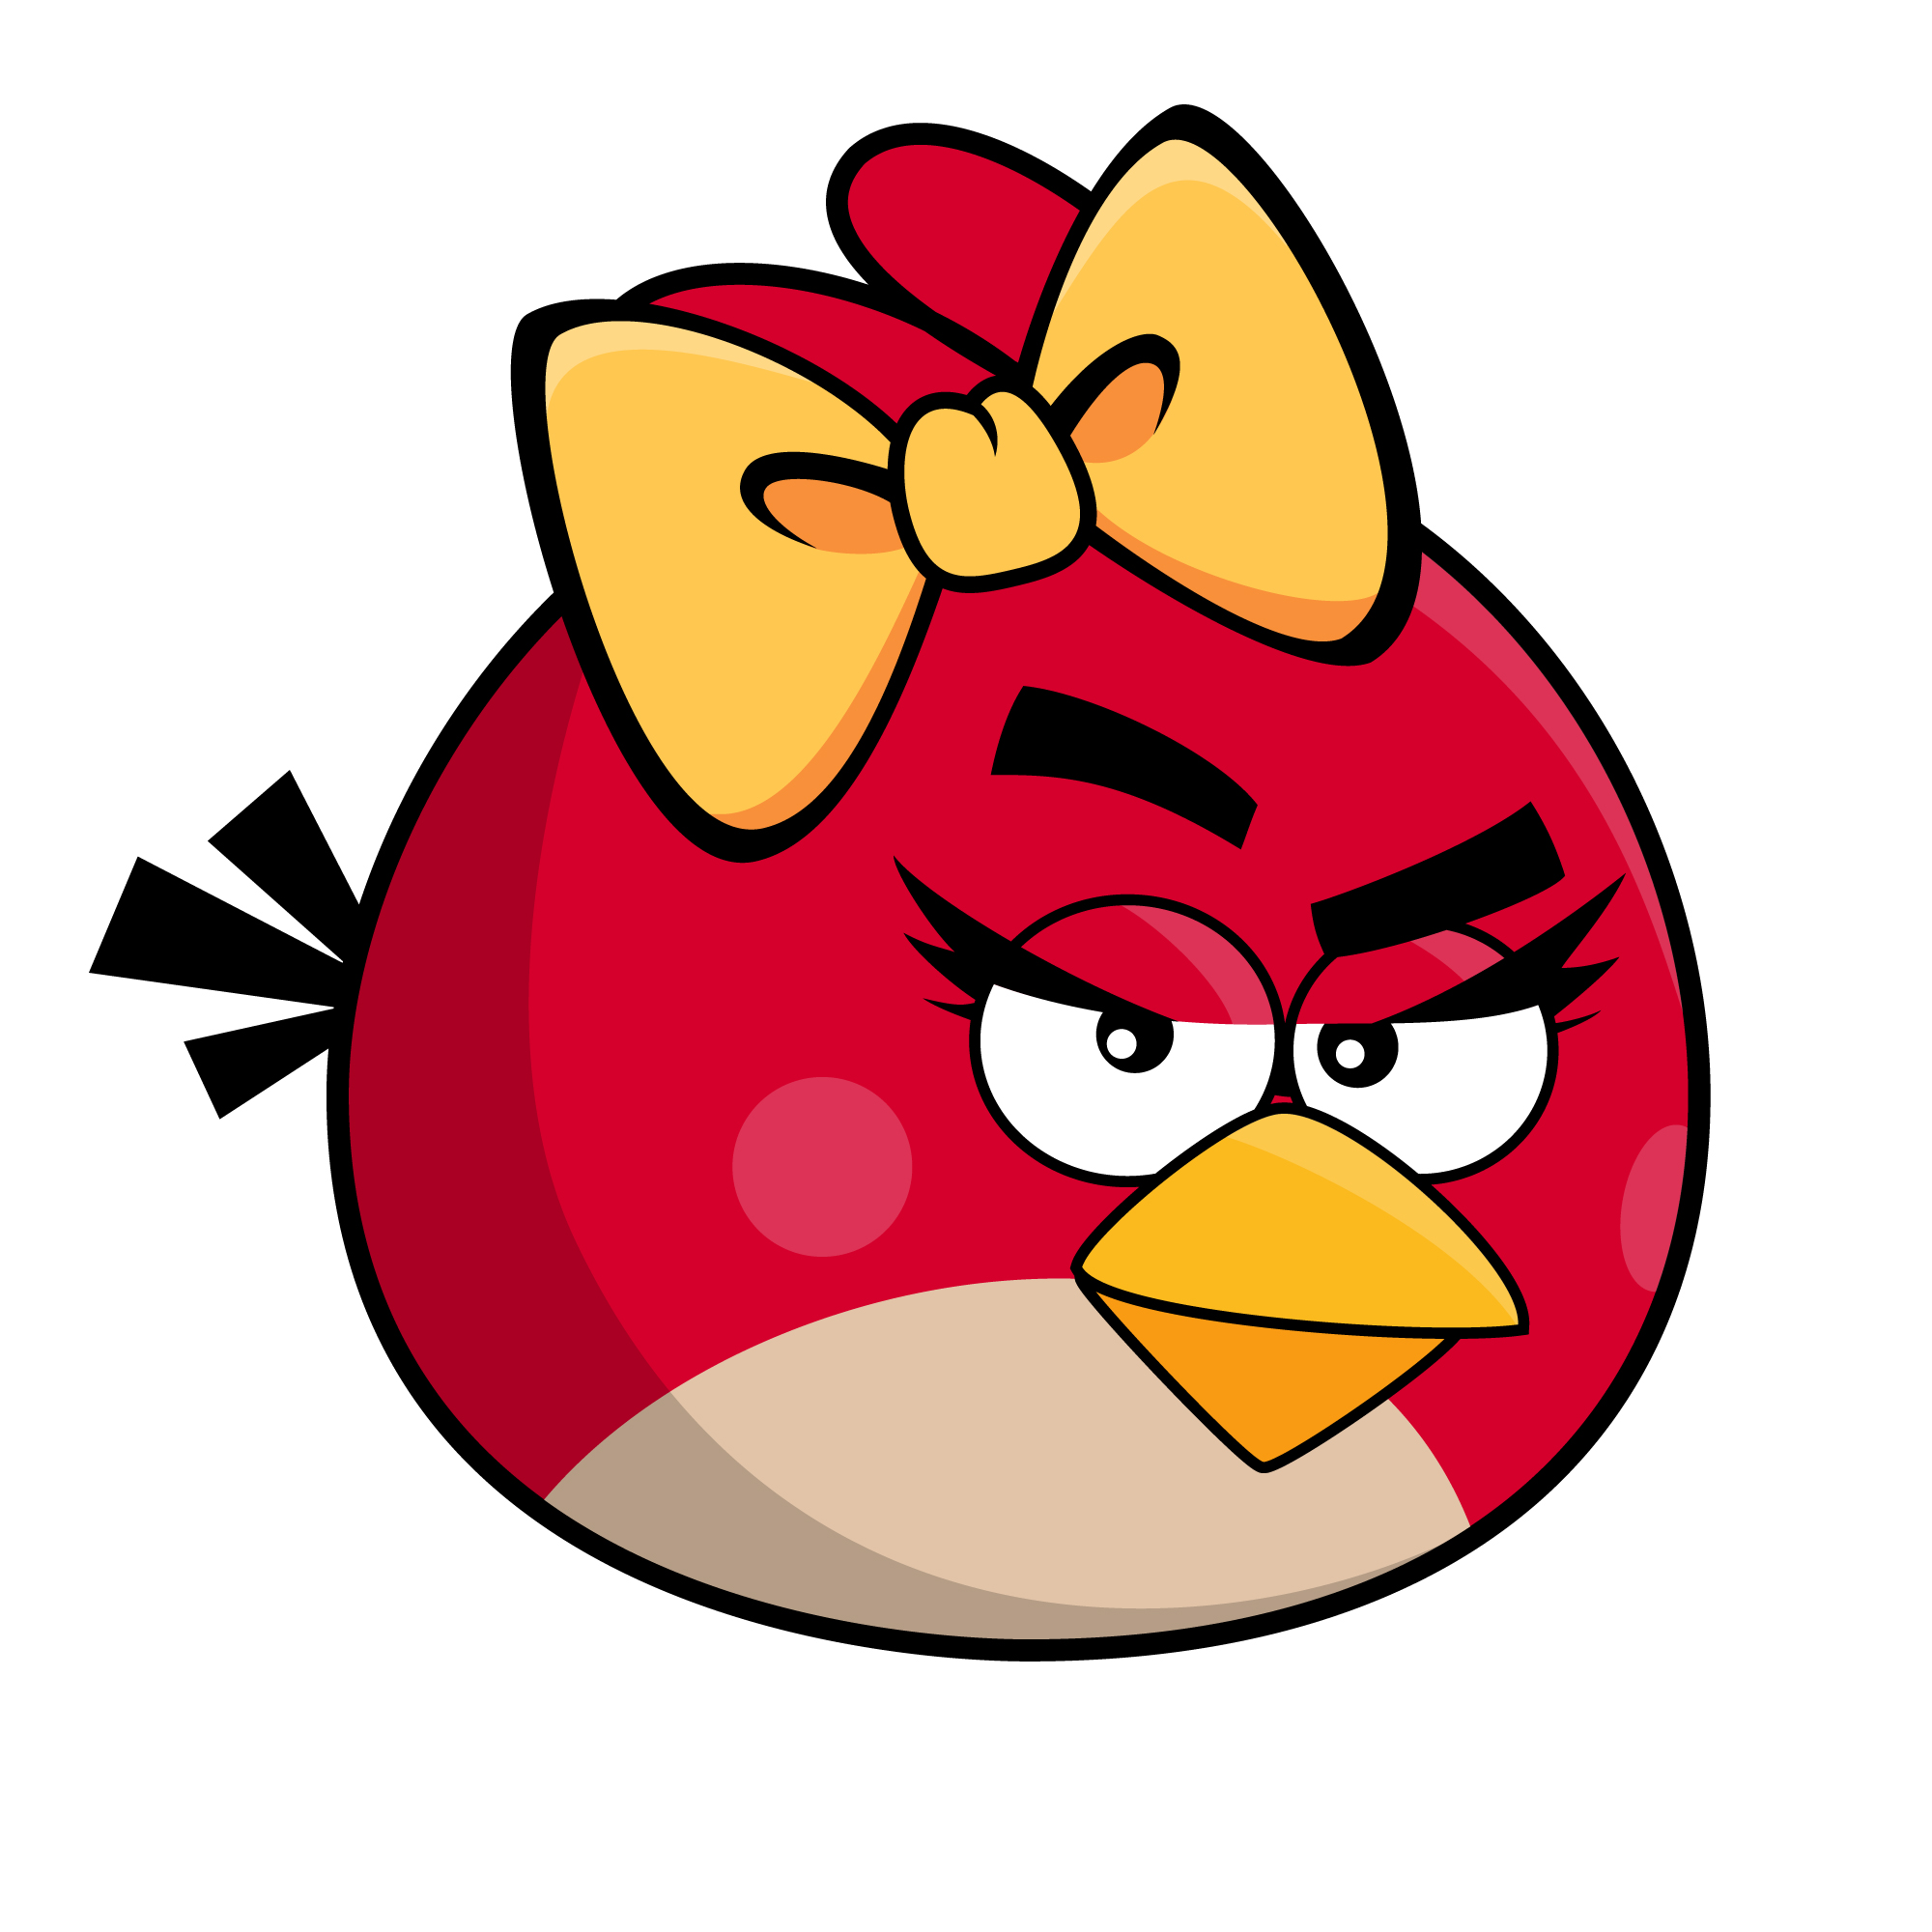 Female Red Bird - Angry Birds Fanon Wiki